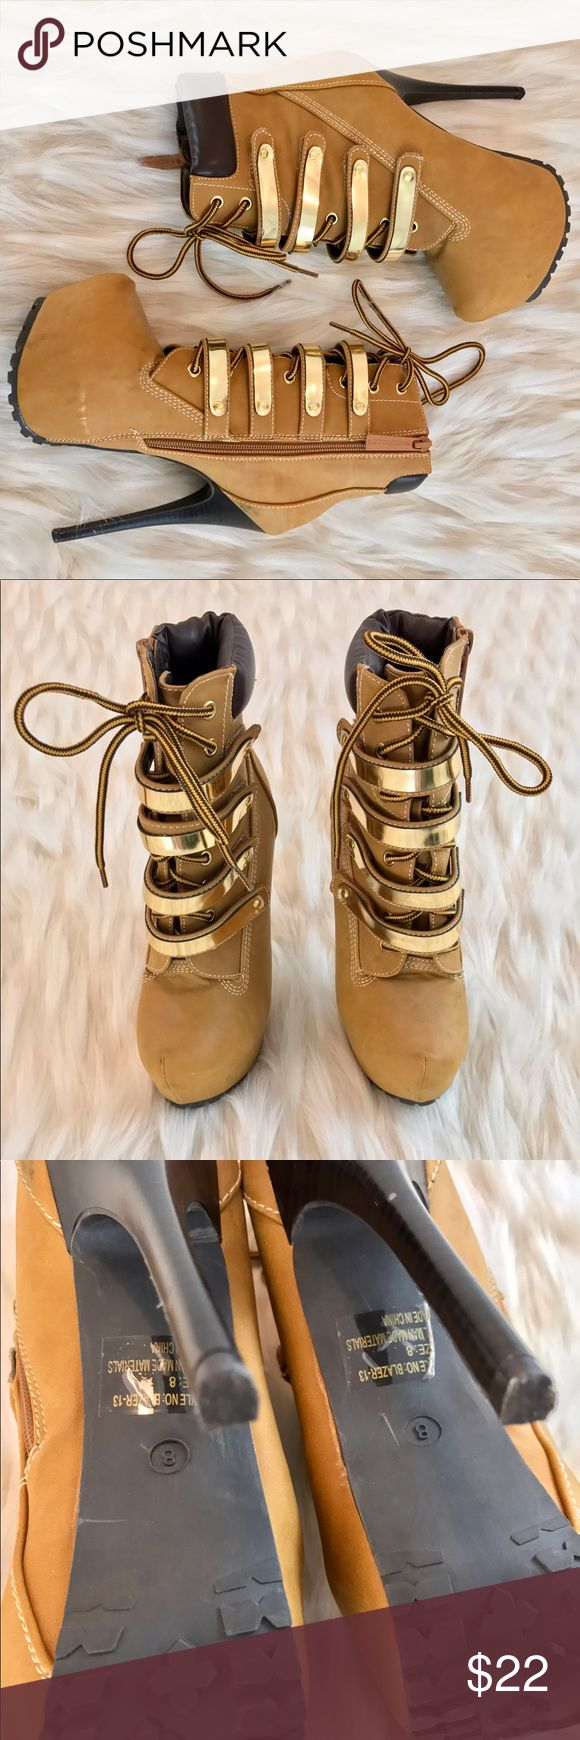 combat timberland style platform booties These timberland style combat booties have gold straps. Very Destinys Child Survivor vibe! Only worn once! True to size! Shoes Heeled Boots